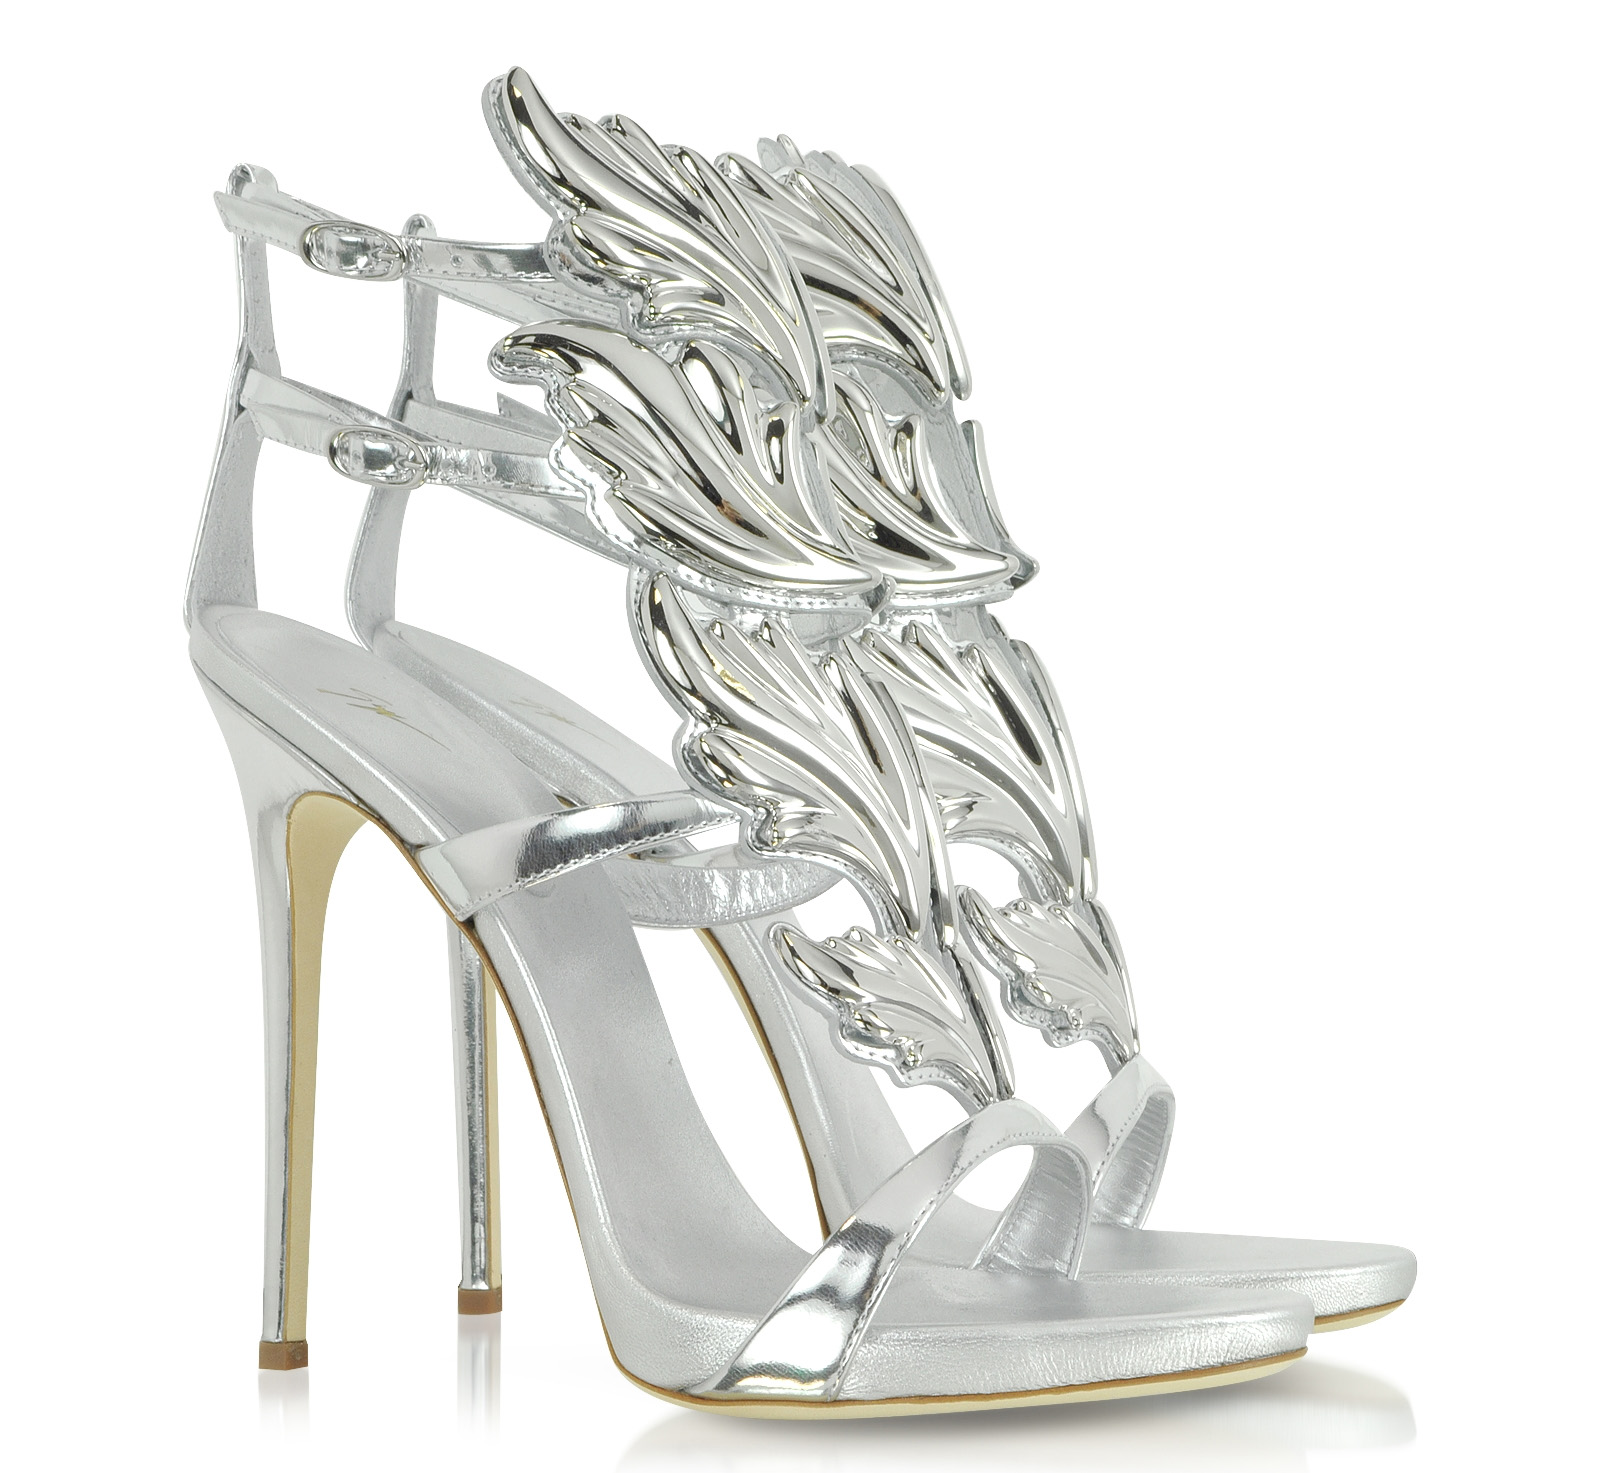 Image result for silver heels